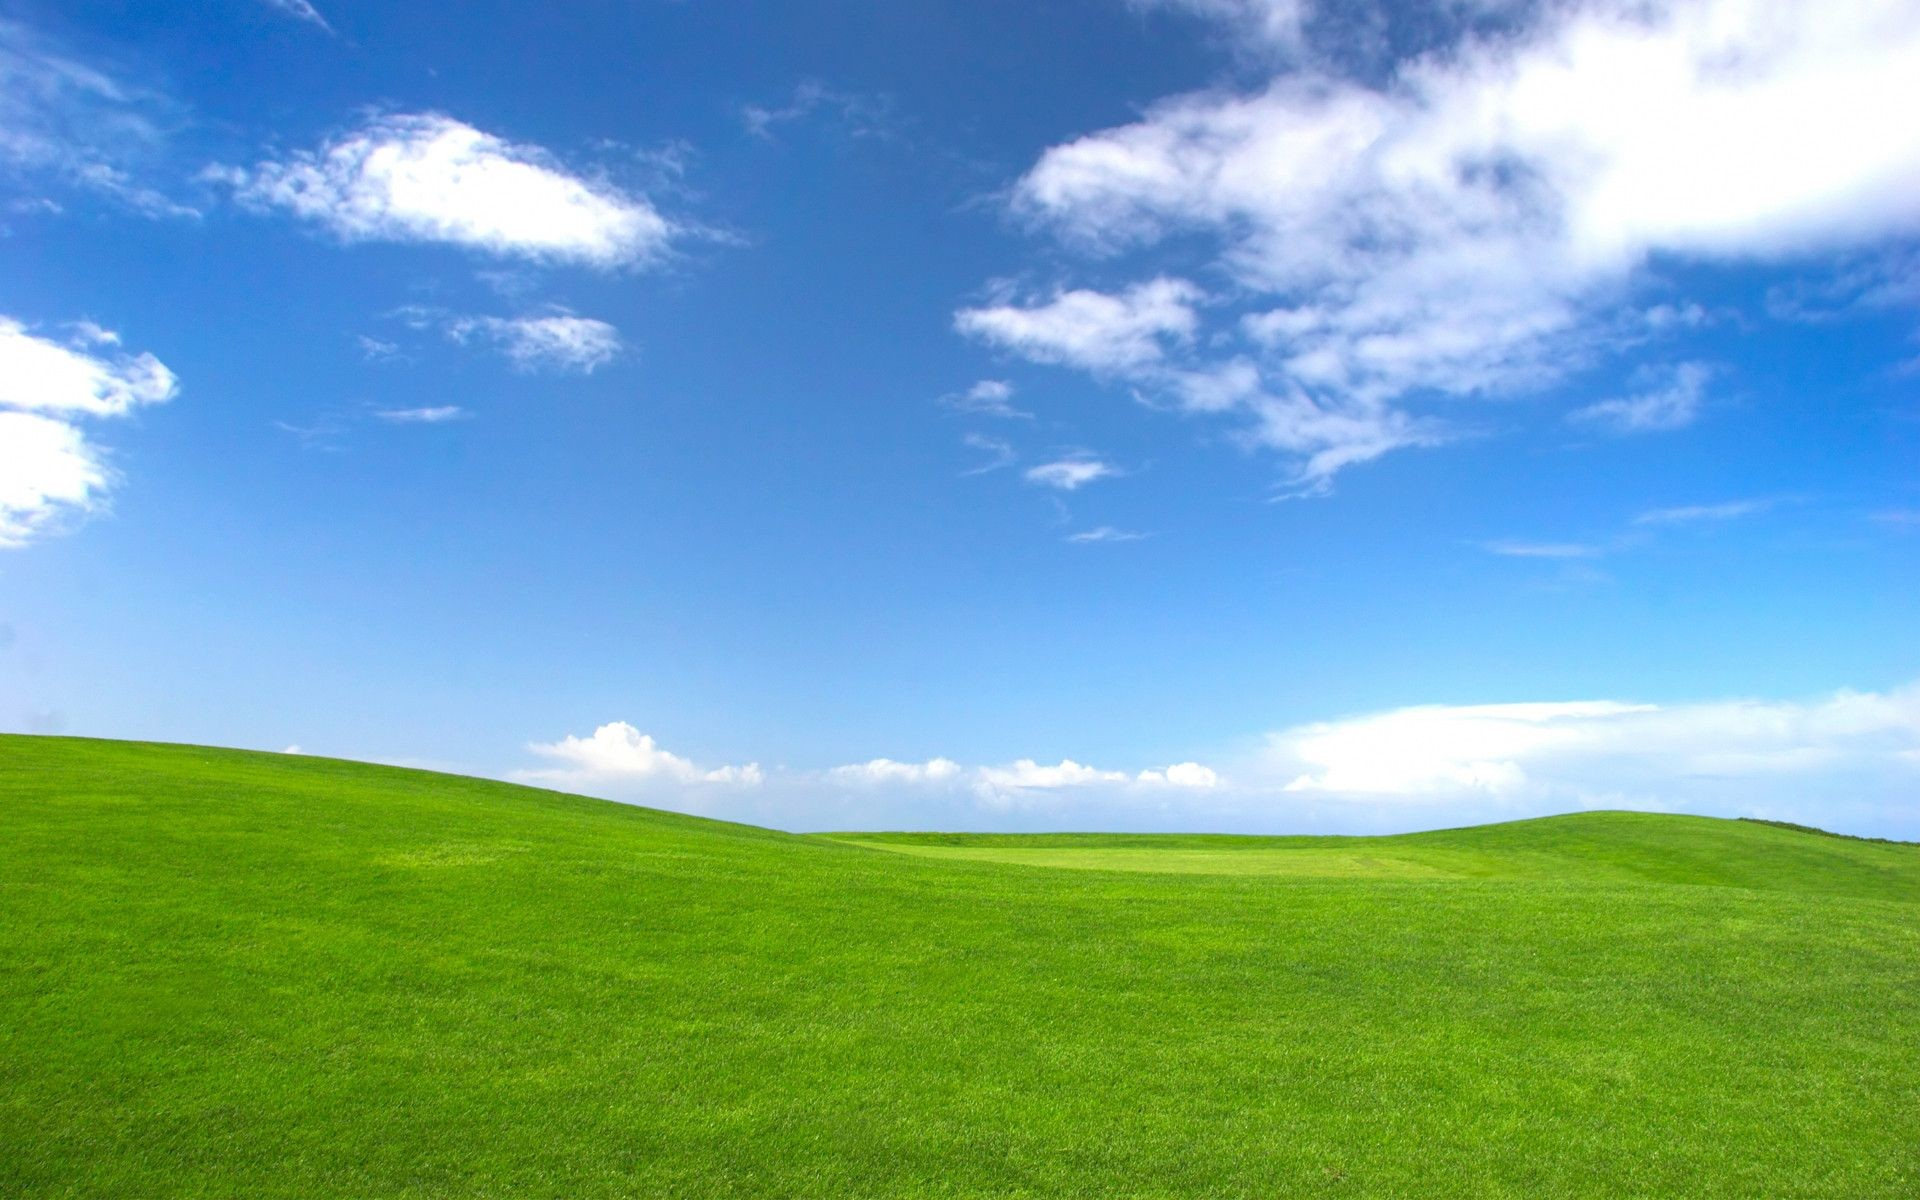 Windows xp hd wallpaper wallpapertag - Hd wallpapers for windows 7 1366x768 nature ...